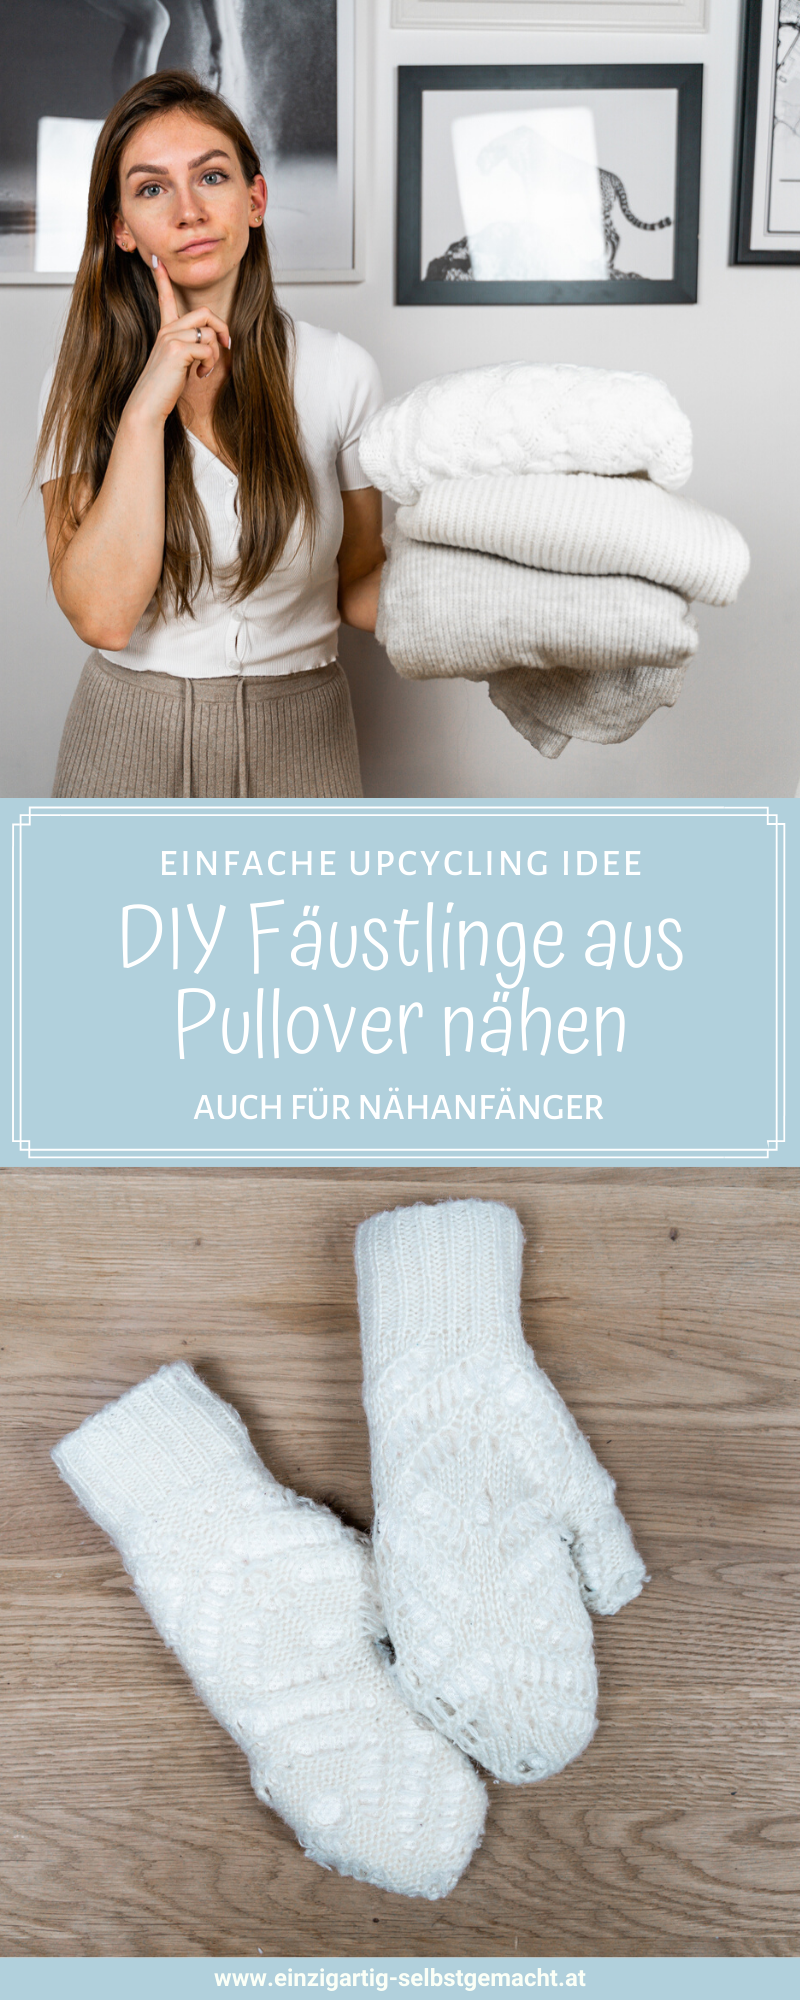 upcycling-pullover-pinterest